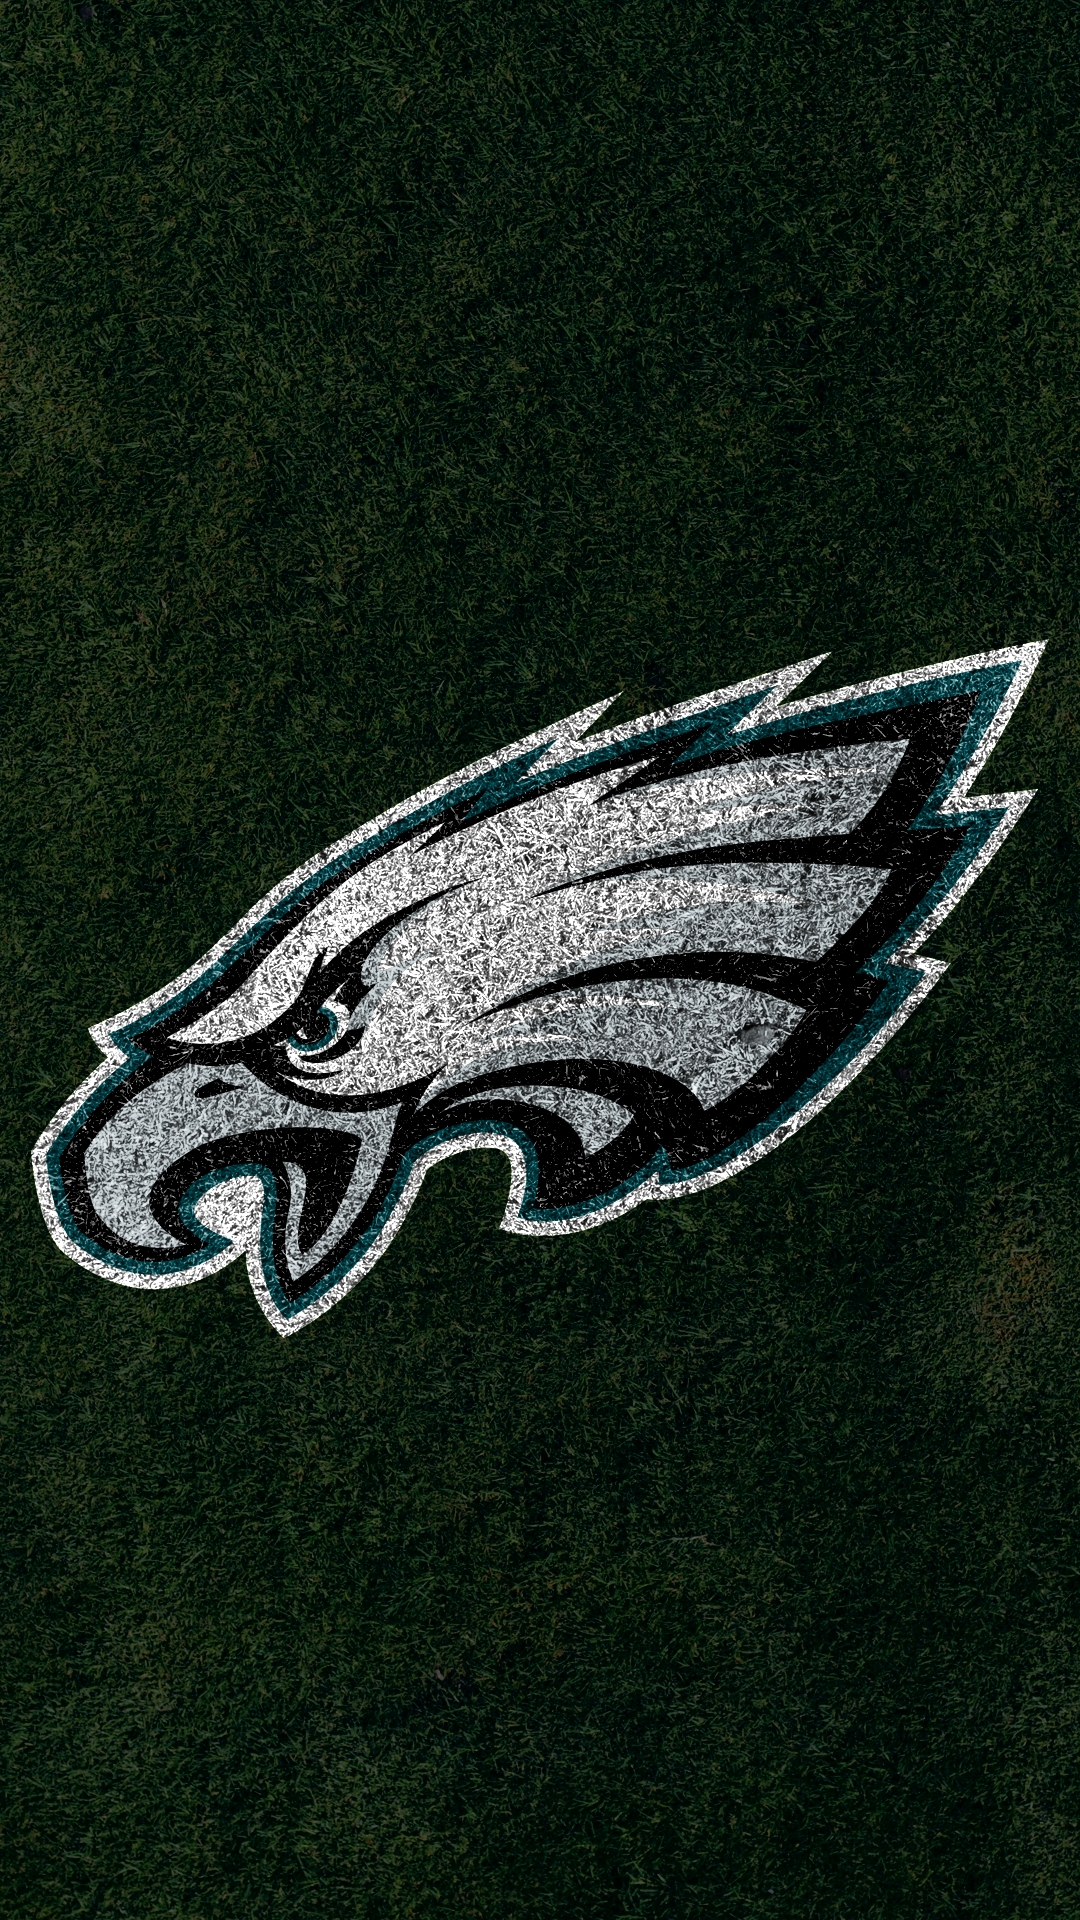 philadelphia eagles wallpapers wallpaper | eagles fan | pinterest